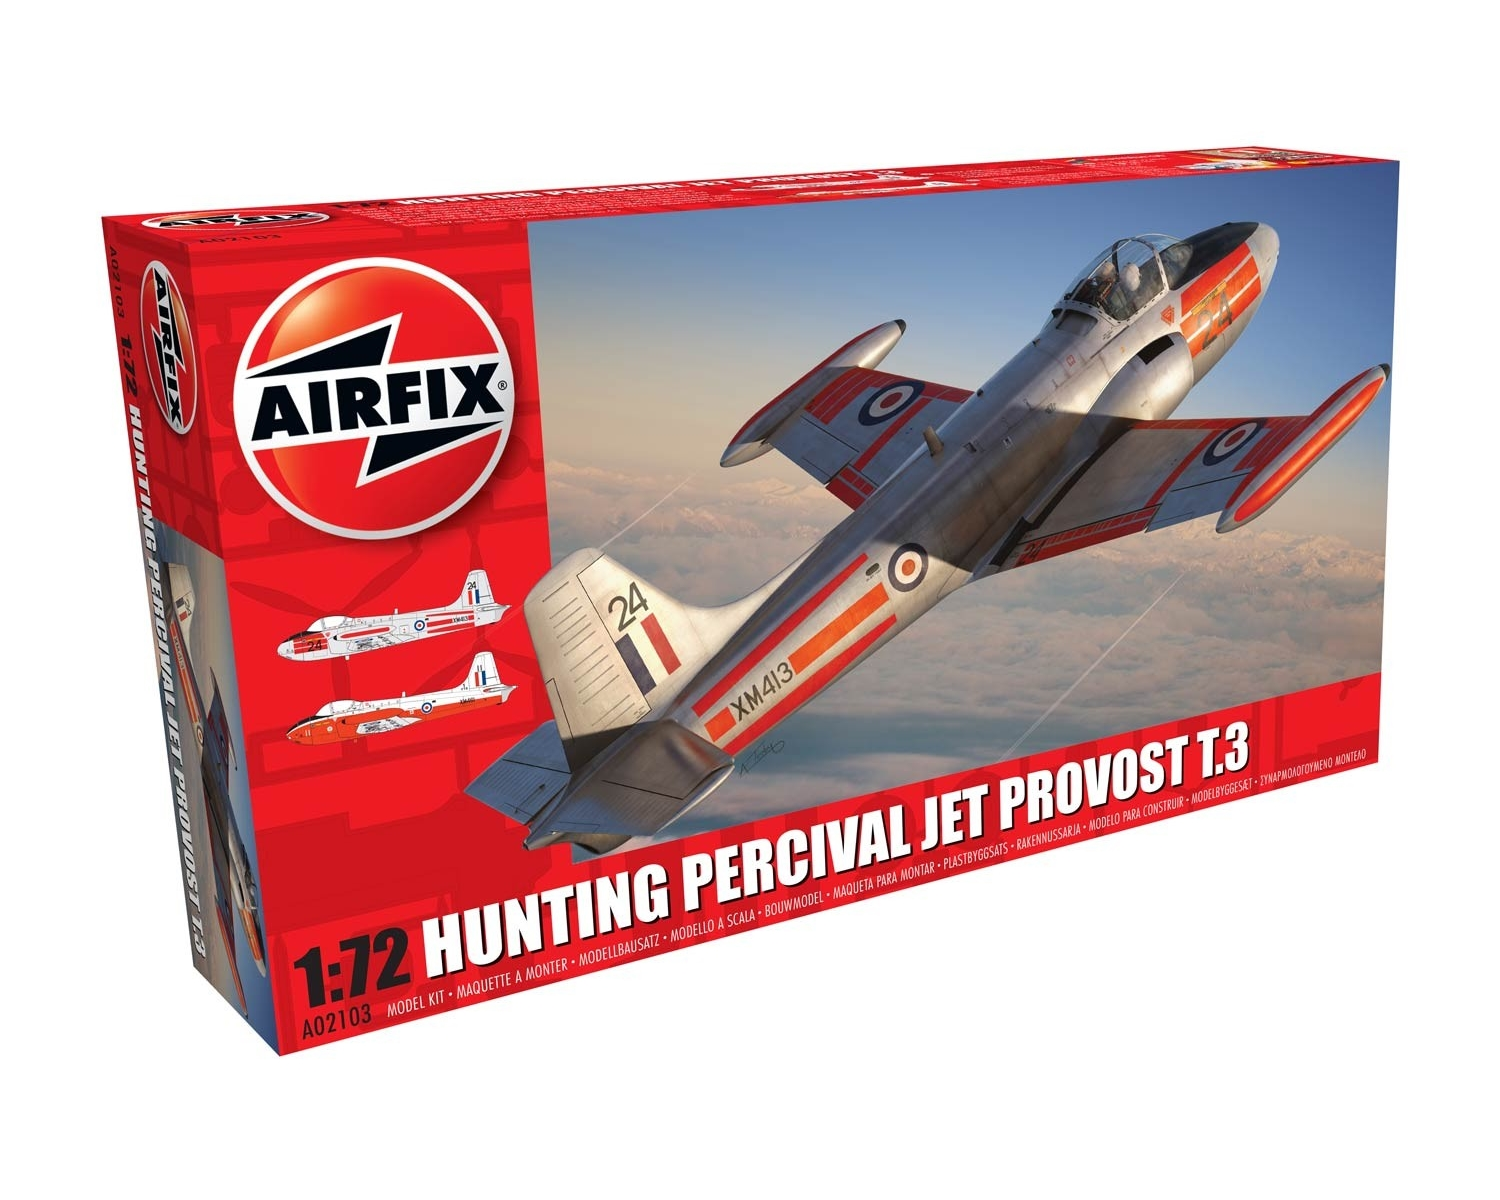 Airfix 02103 -  HUNTING PERCIVAL JET PROVOST T.3